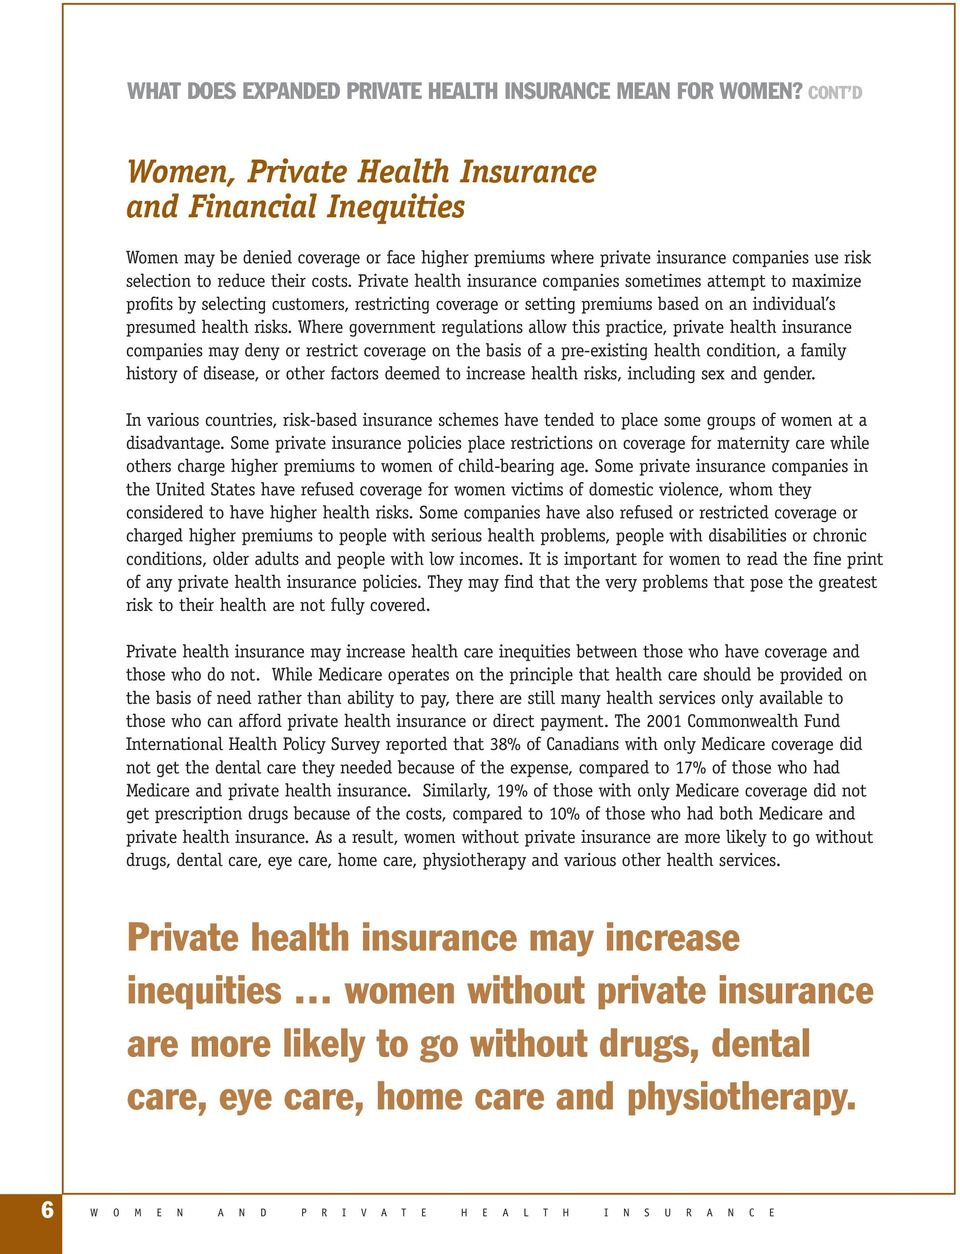 Private health insurance companies sometimes attempt to maximize profits by selecting customers, restricting coverage or setting premiums based on an individual s presumed health risks.